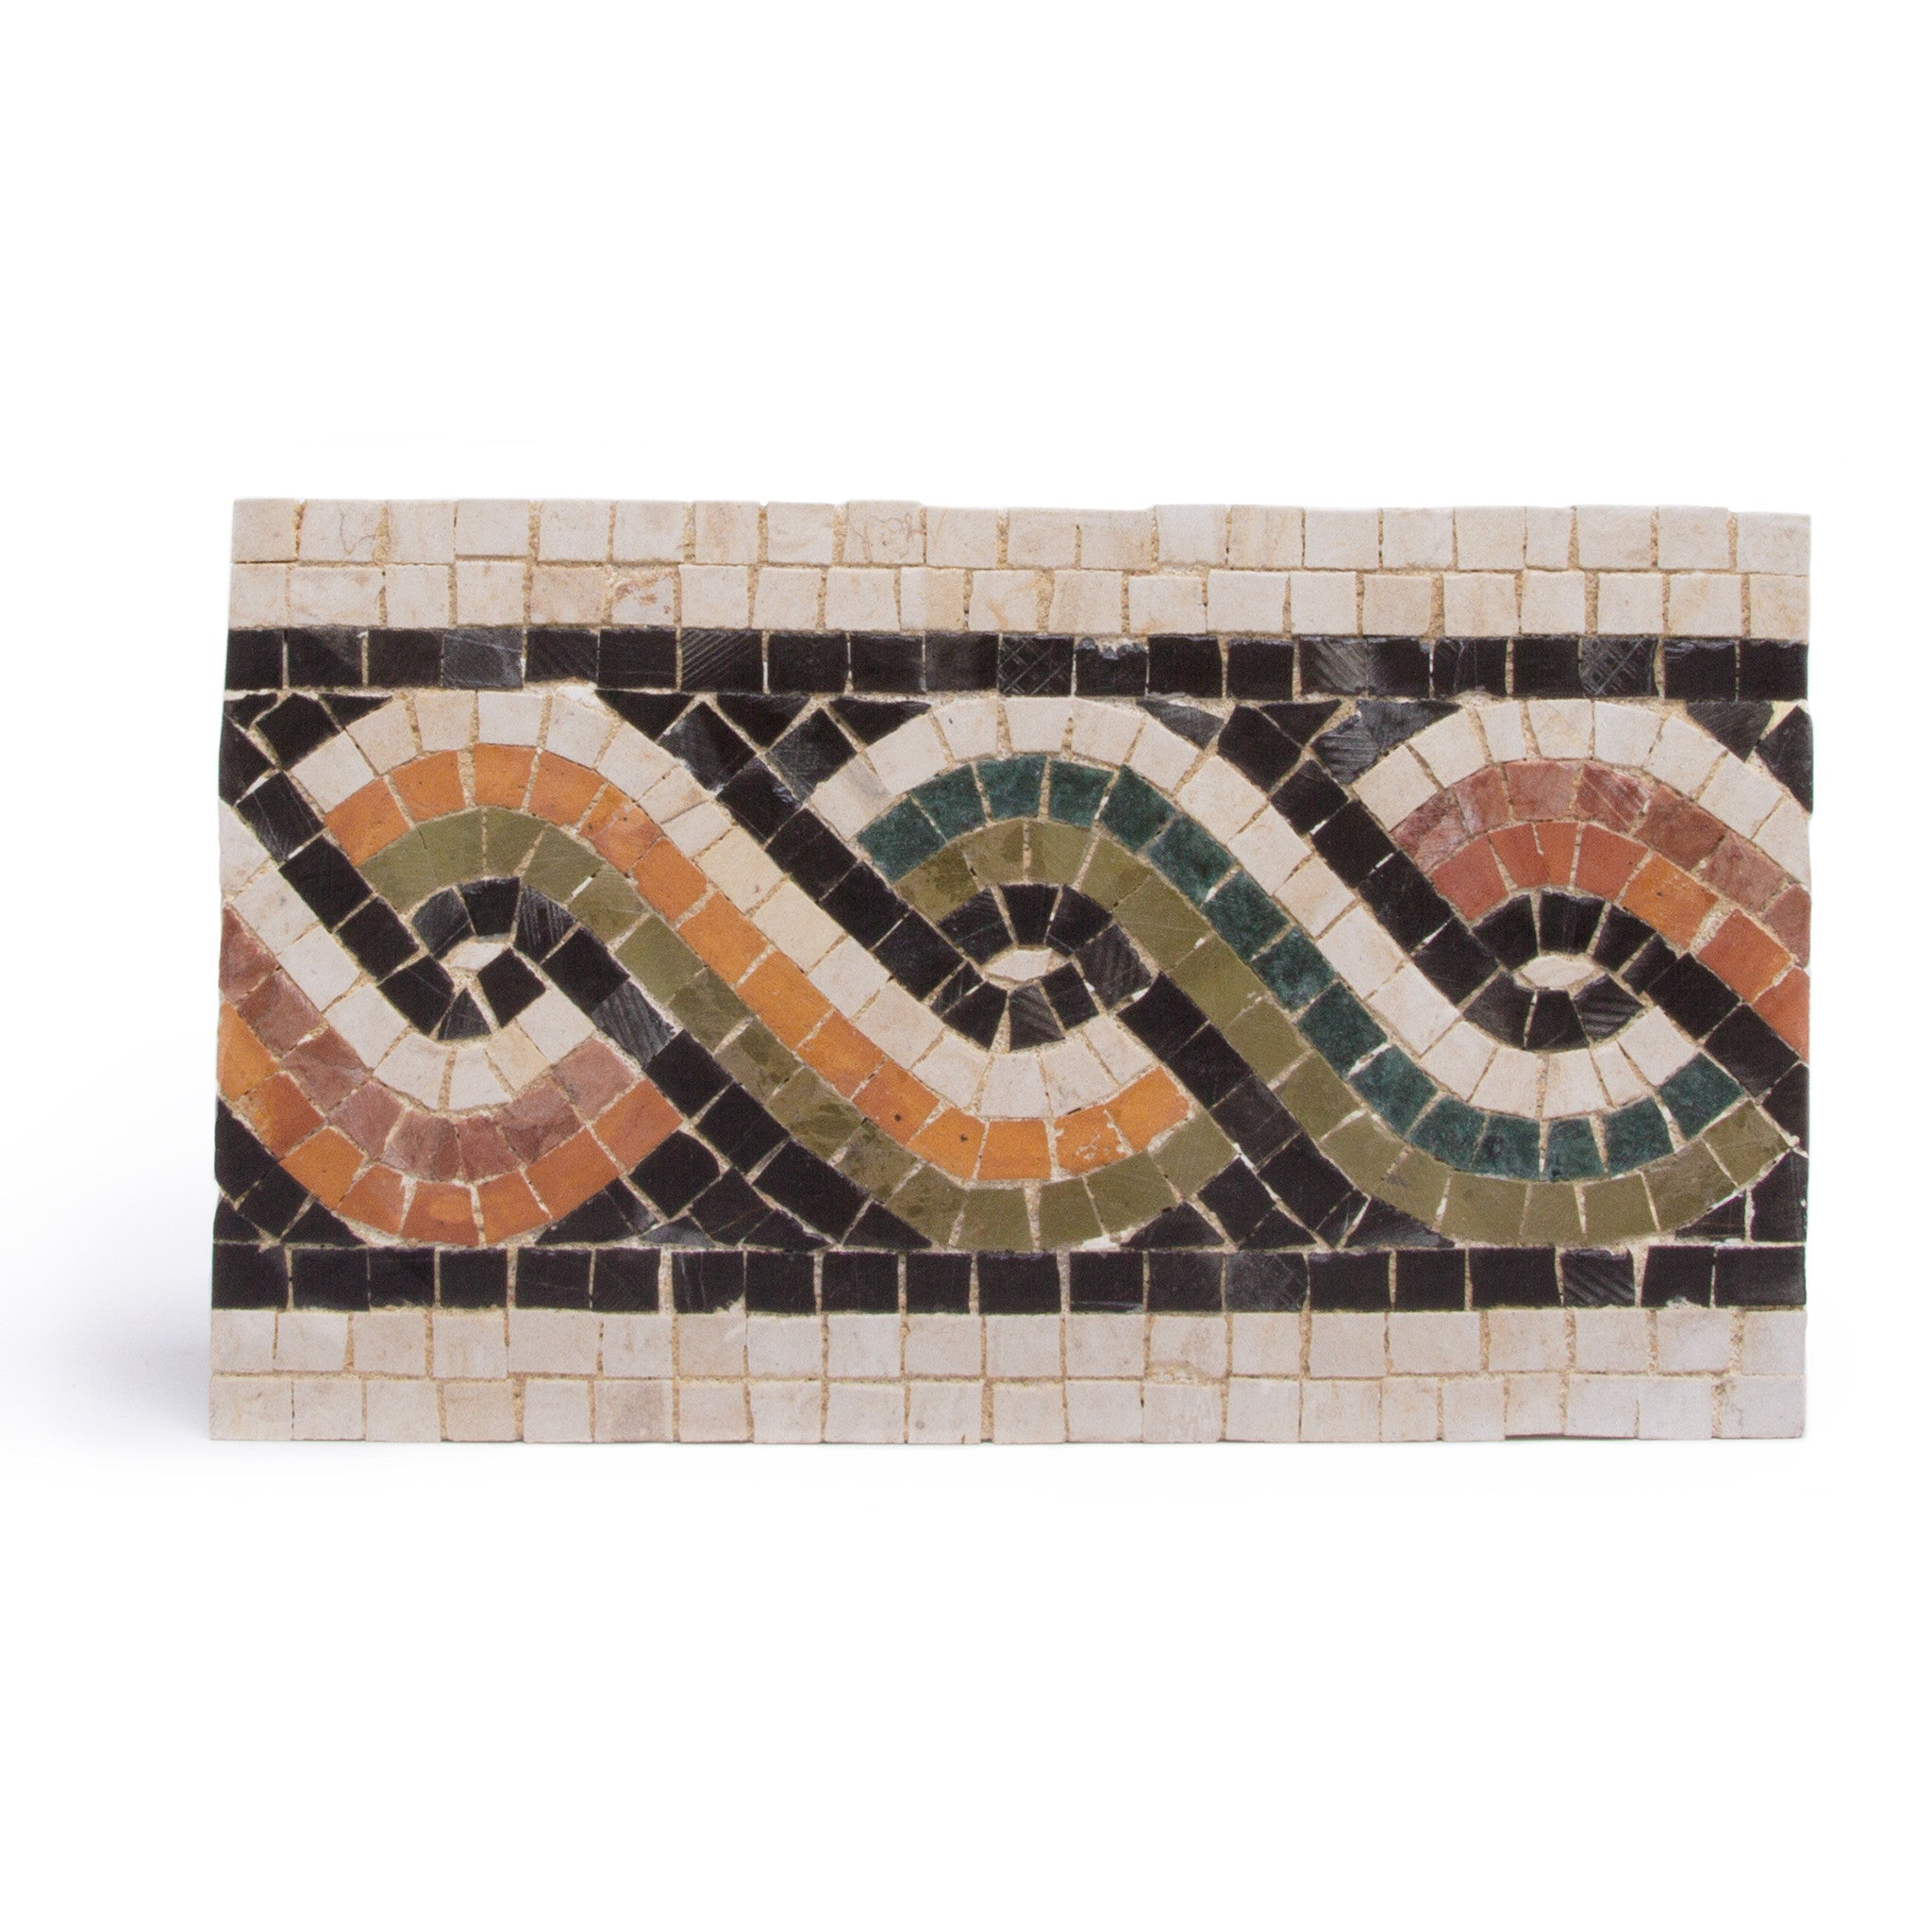 mosaic border reproduction – the getty store, Hause deko